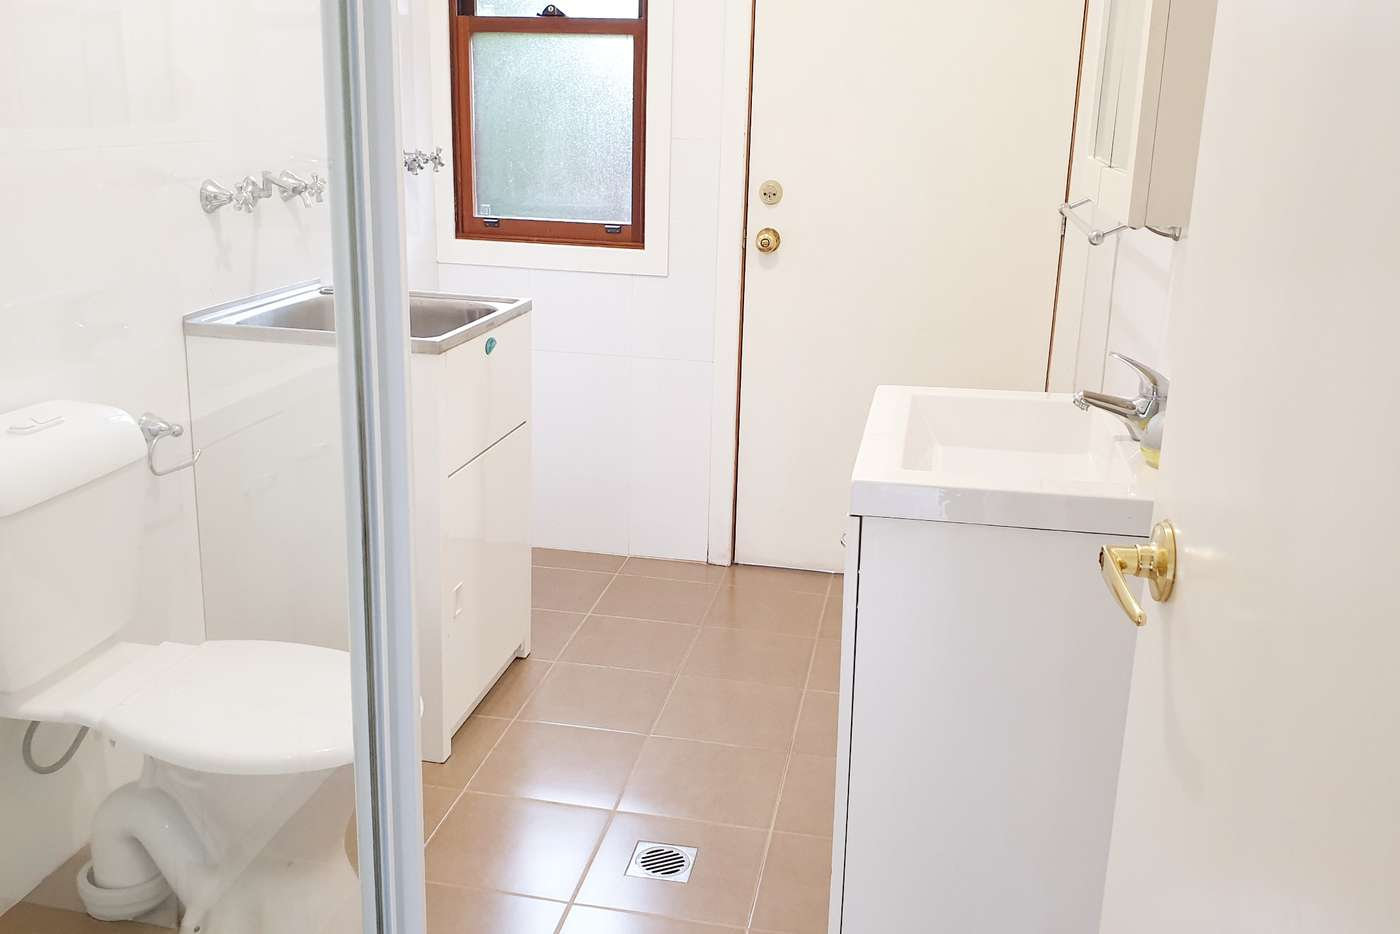 Seventh view of Homely house listing, 59a Ross St, North Parramatta NSW 2151